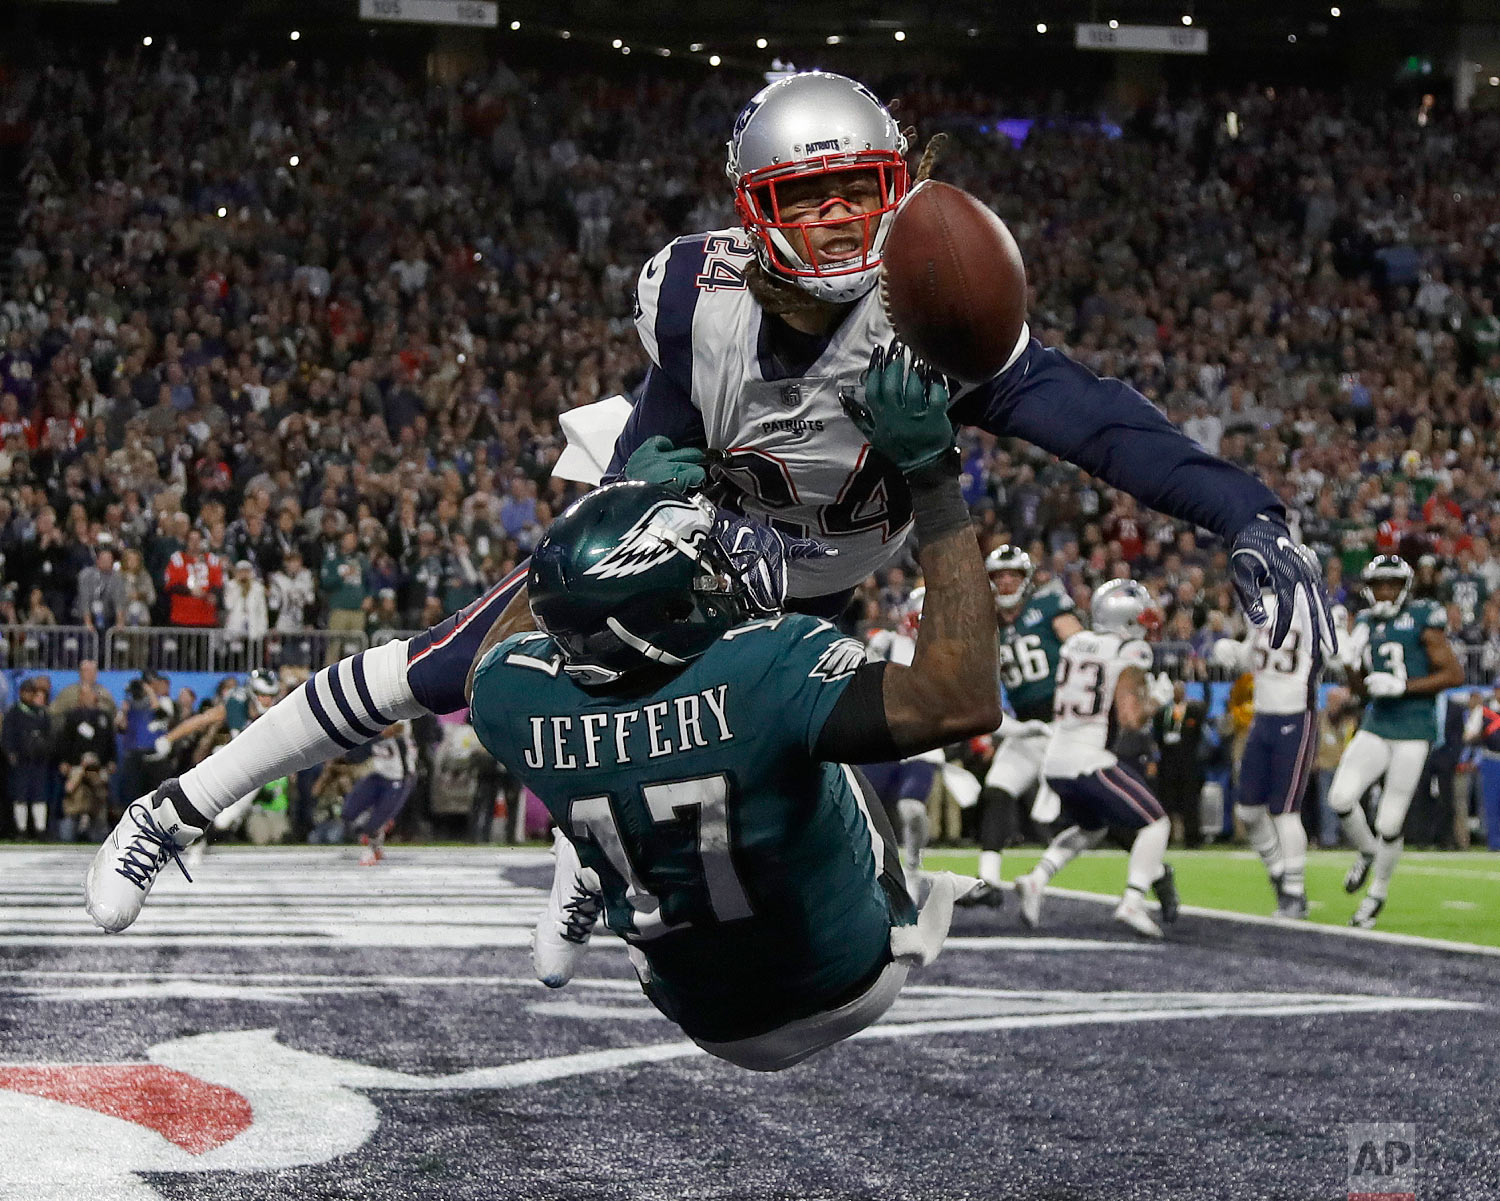 New England Patriots' Stephon Gilmore, top, breaks up a pass intended for Philadelphia Eagles' Alshon Jeffery during the first half of the NFL Super Bowl 52 football game on Feb. 4, 2018, in Minneapolis. (AP Photo/Matt Slocum)